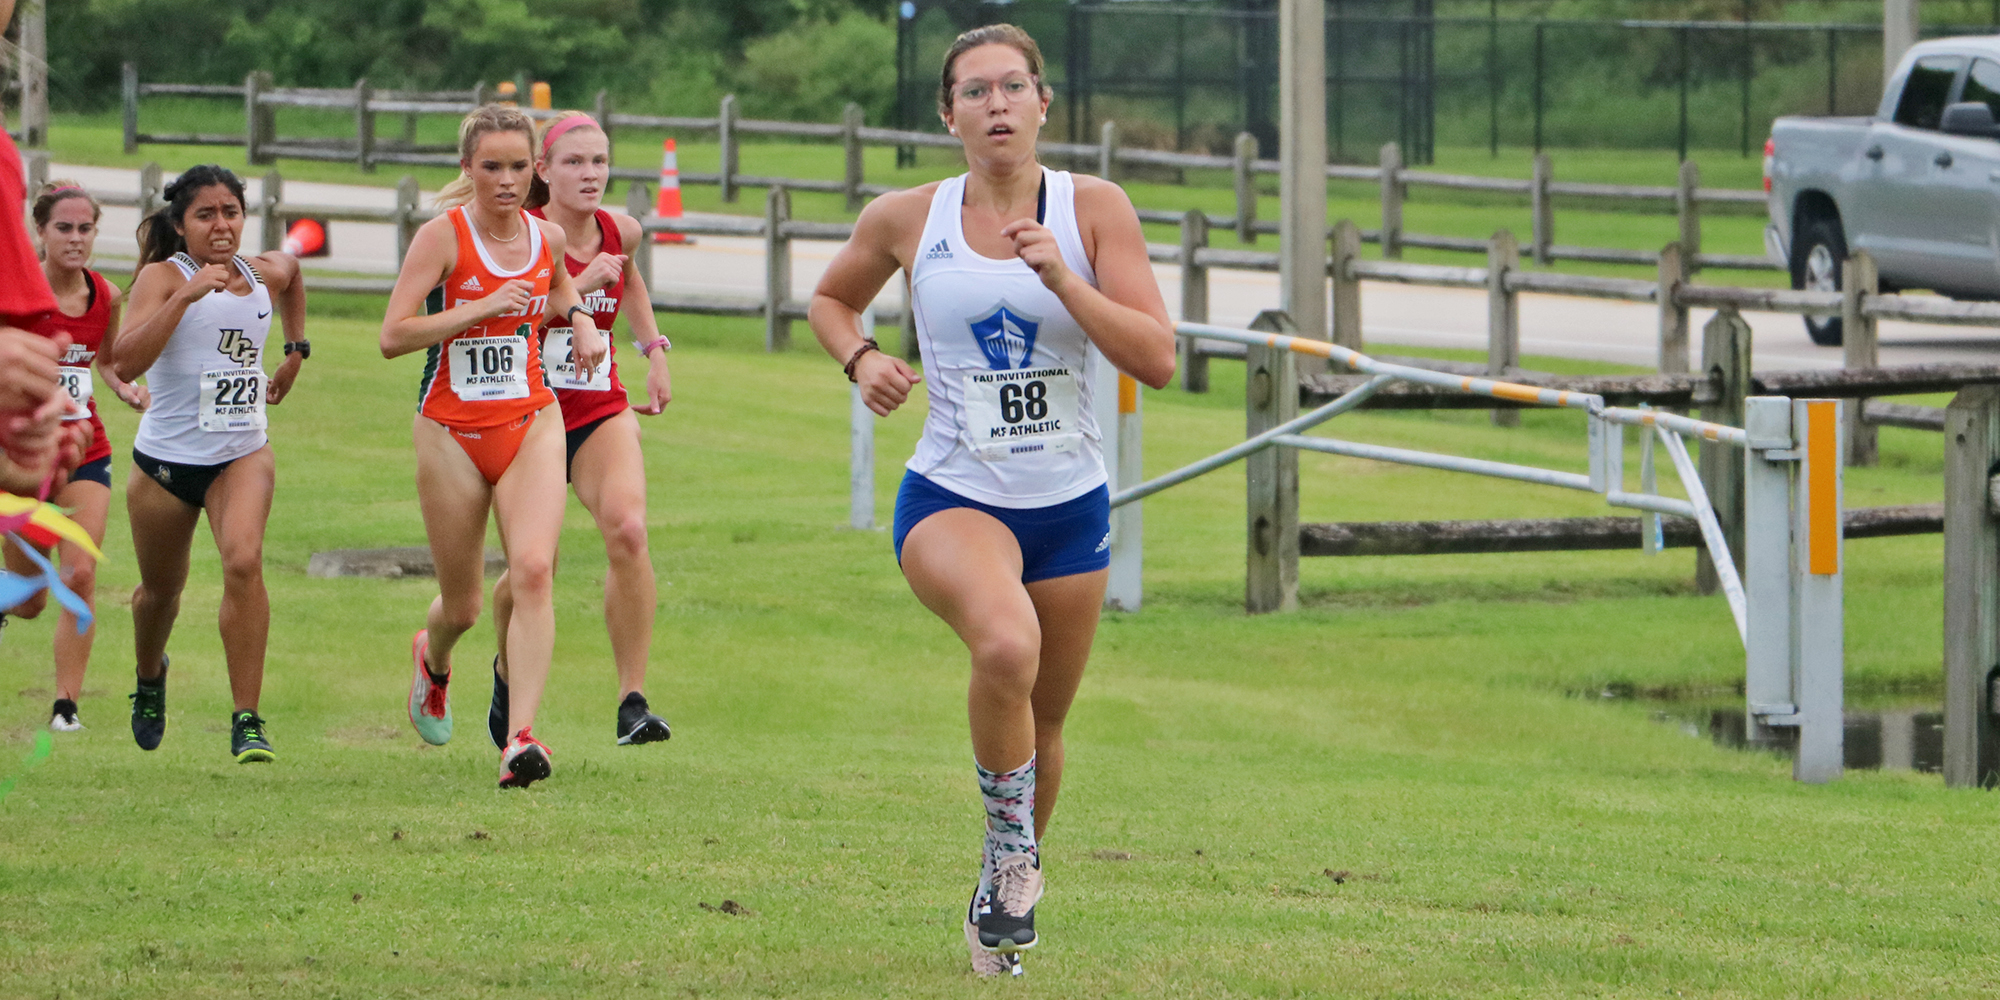 Women's Cross Country Opens 2018 at FAU Invite